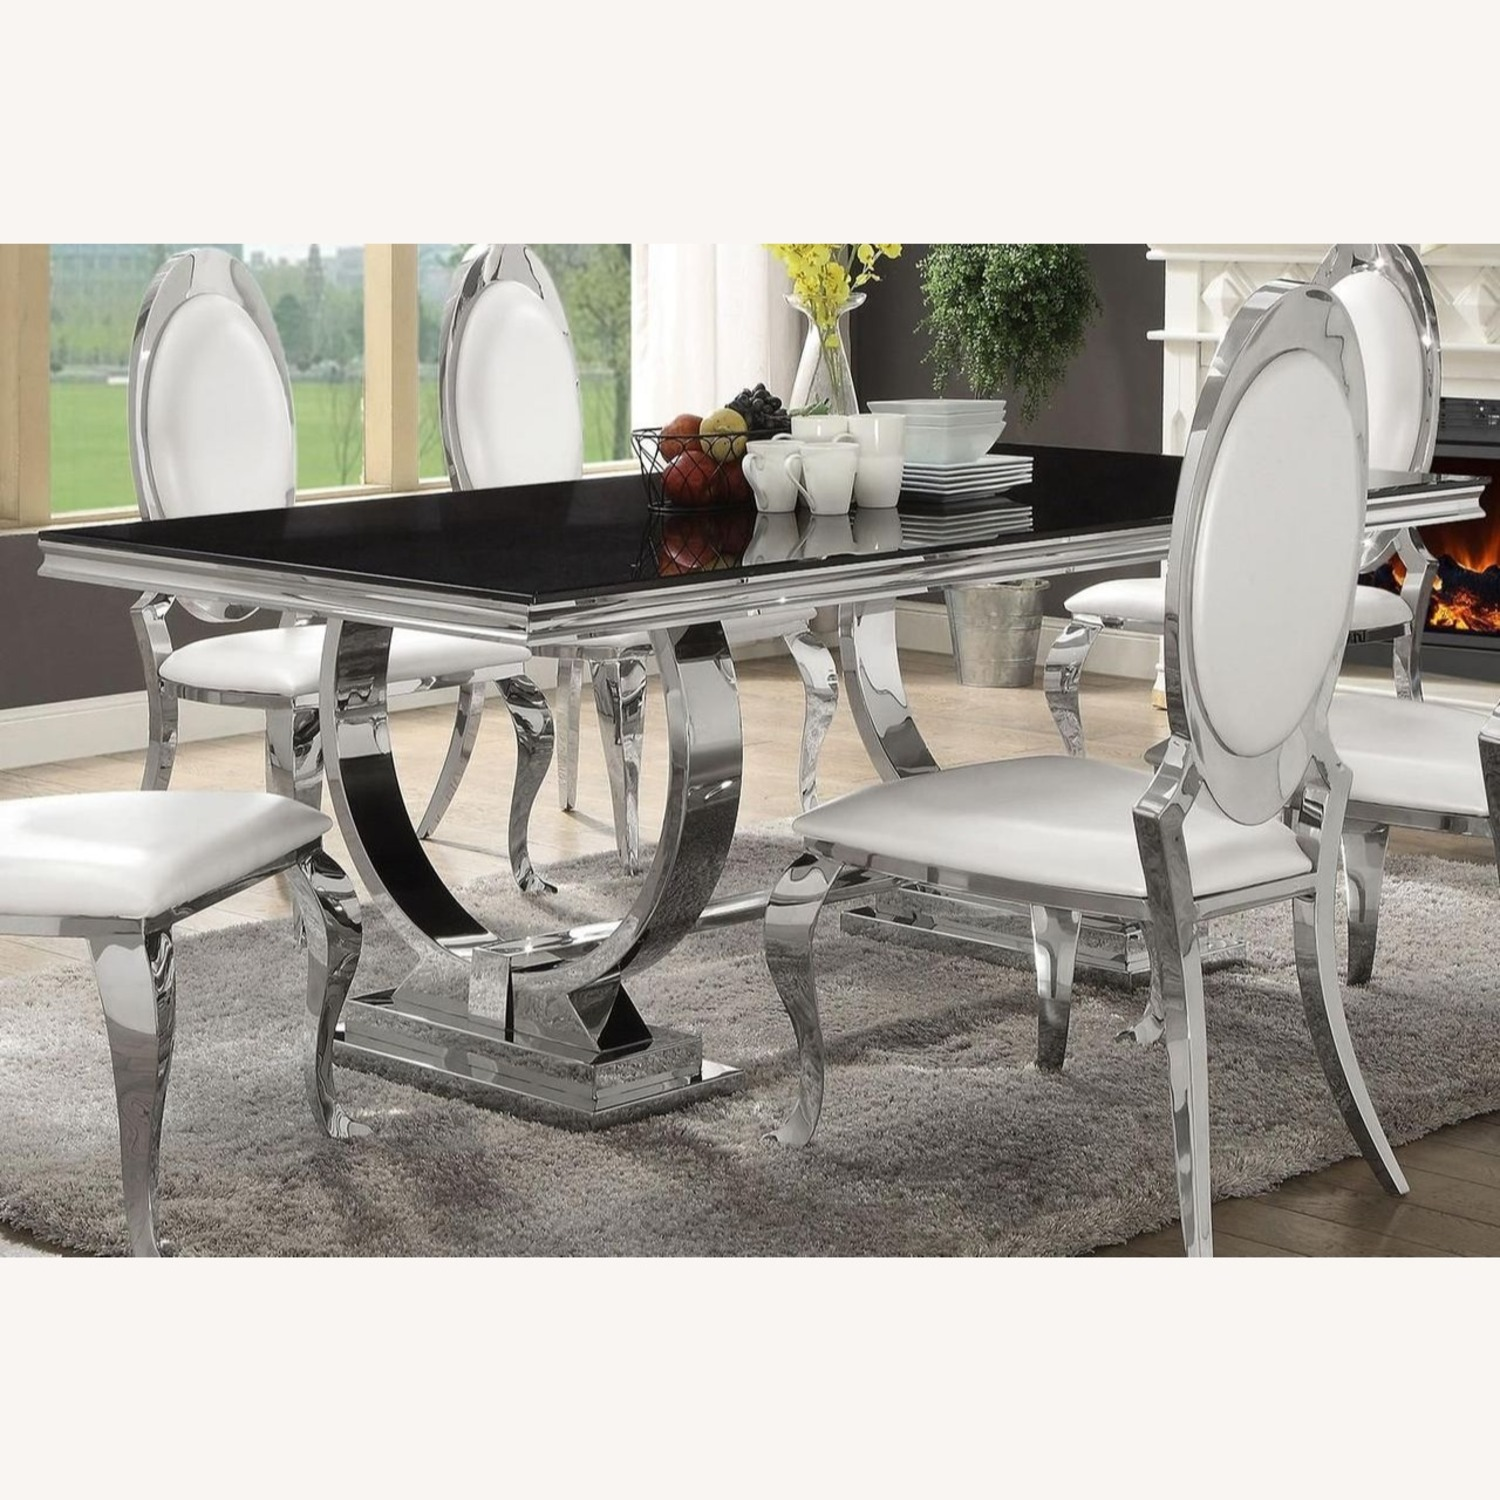 Modern Dining Table In Chrome Finish - image-2